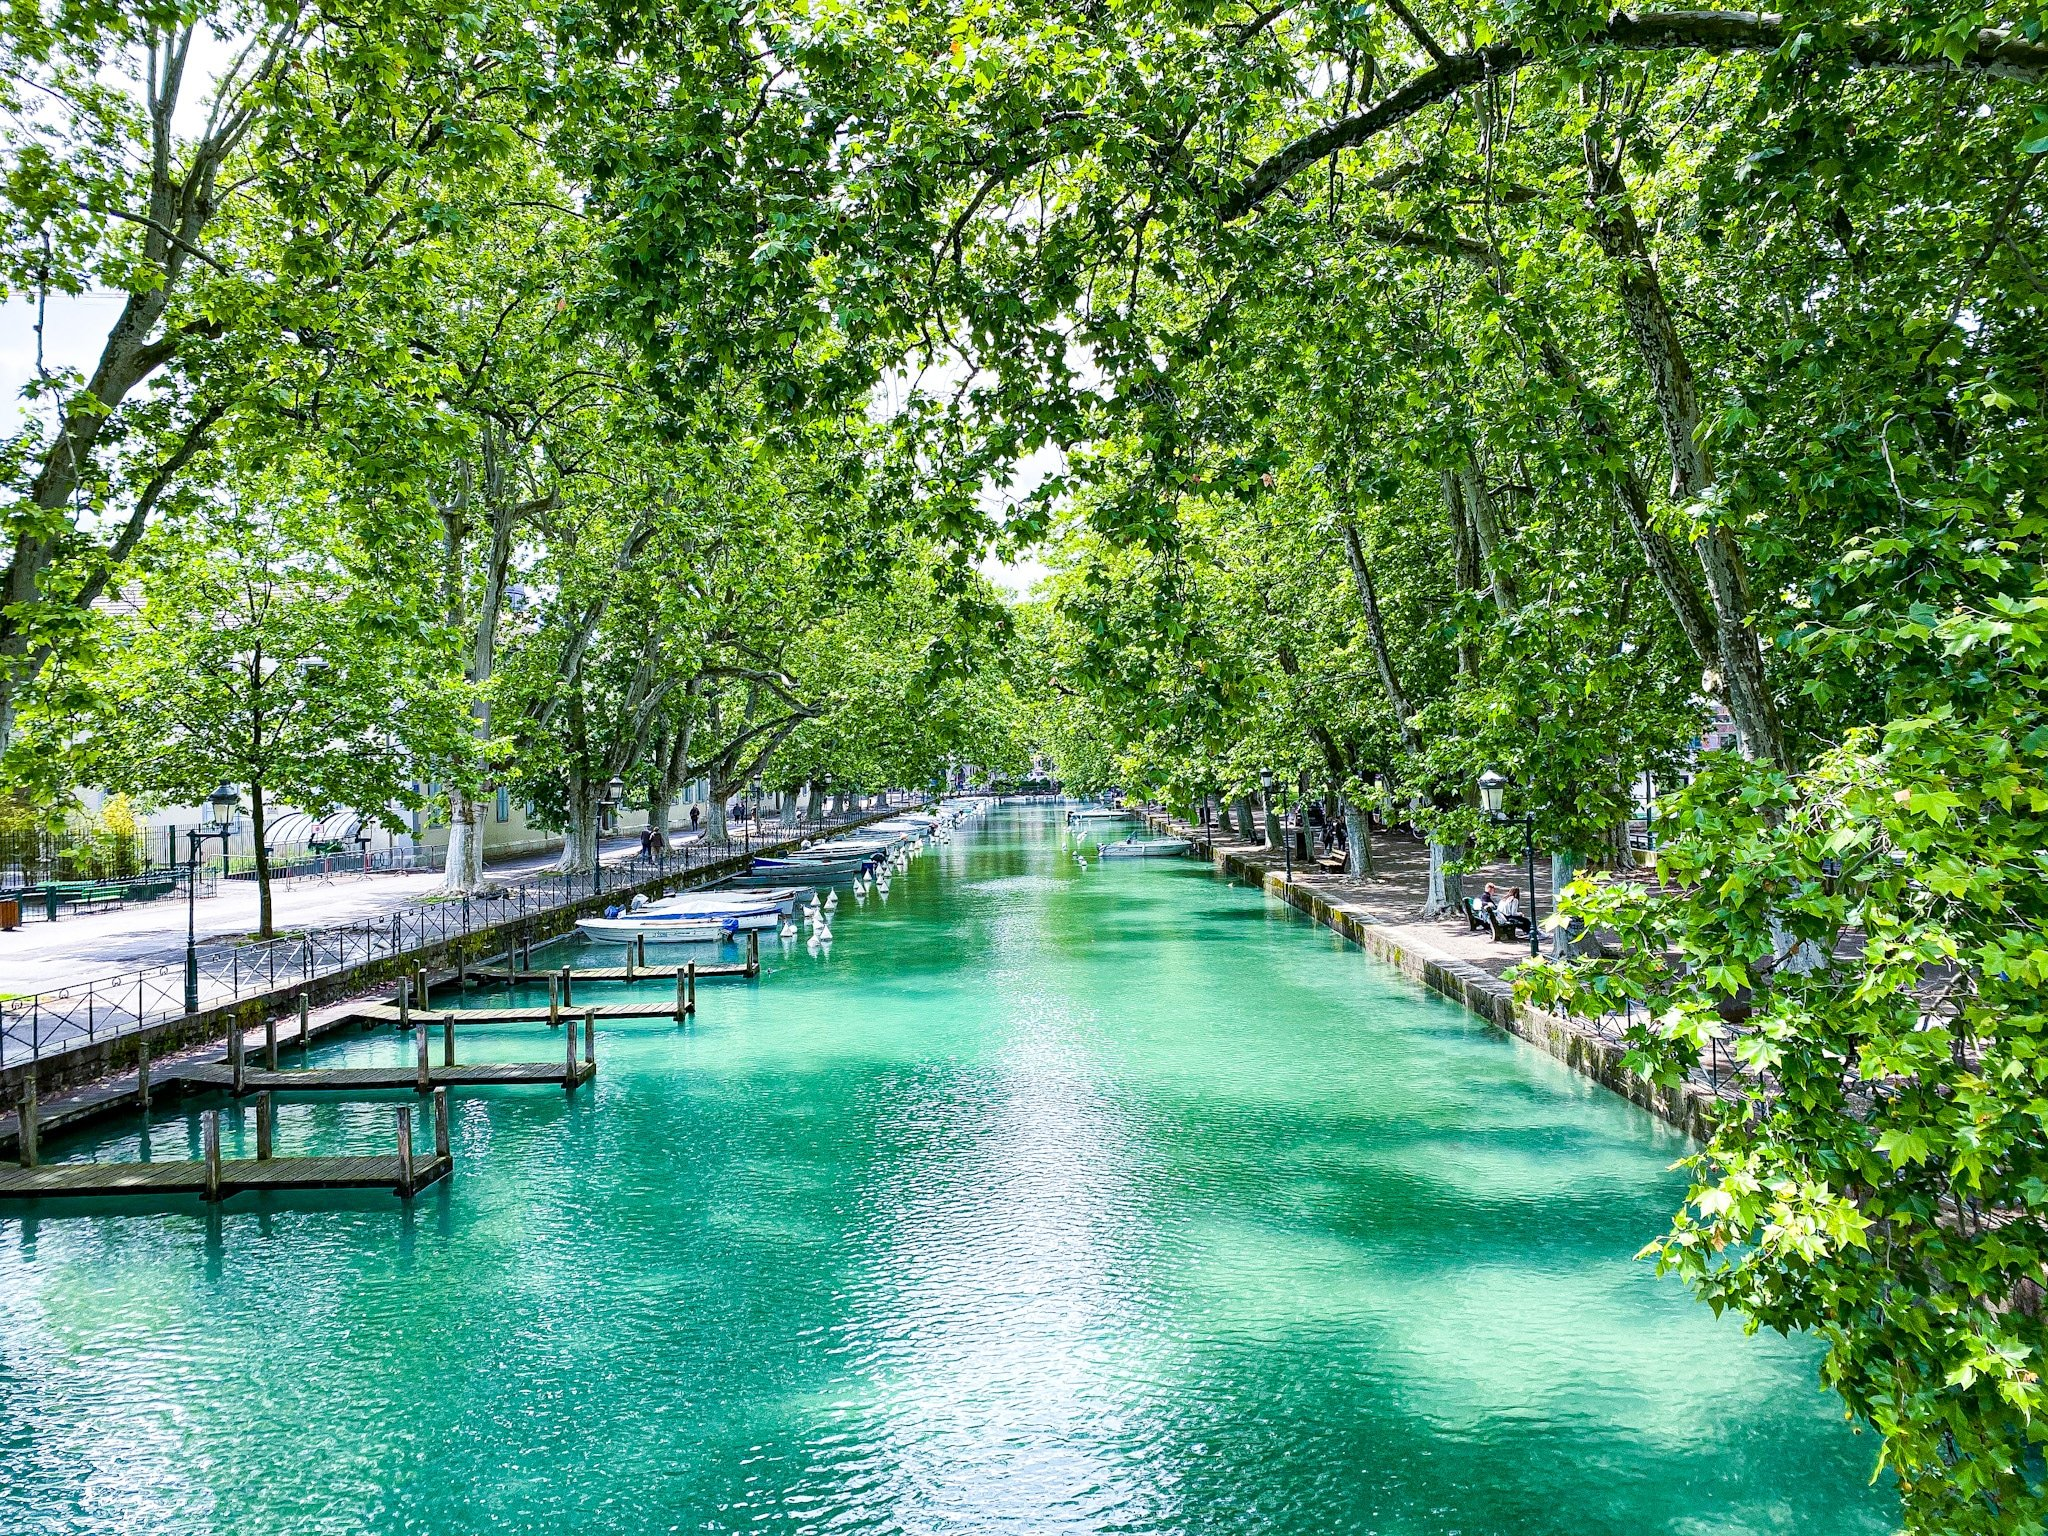 Canal Vassé in Annecy